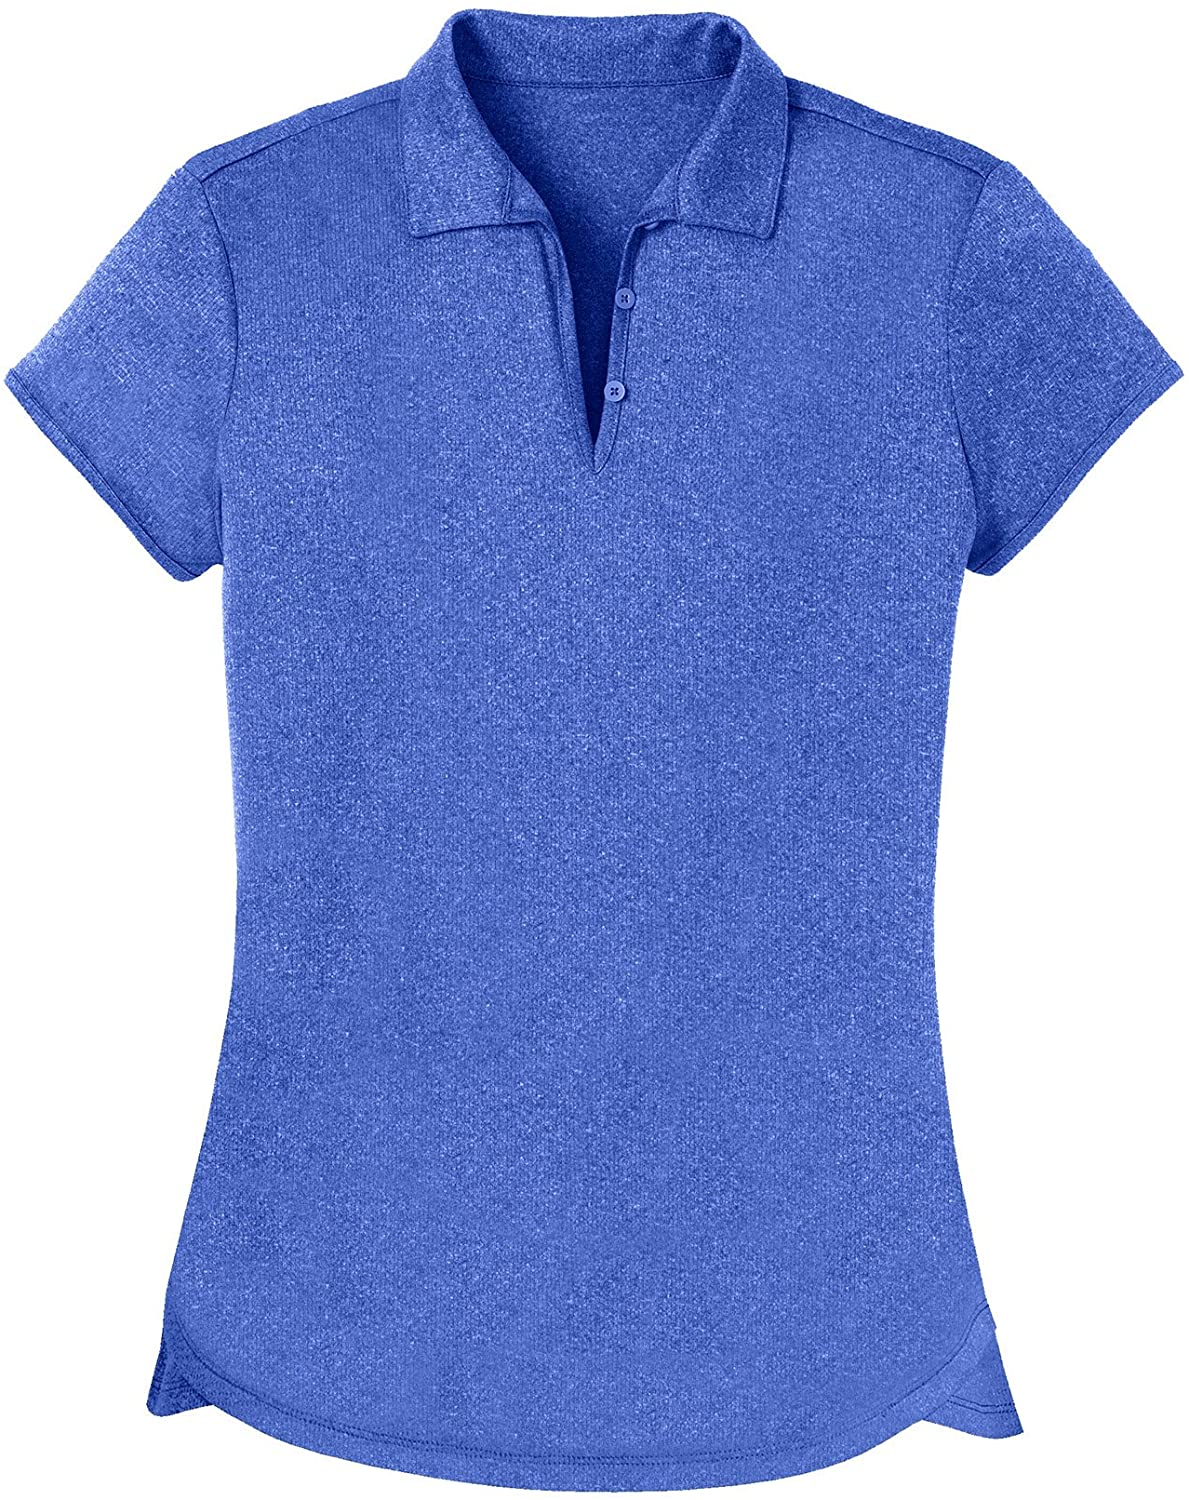 Opna Women's Ladies Moisture Wicking Athletic Golf Polo Shirts Tops & Tees: Clothing